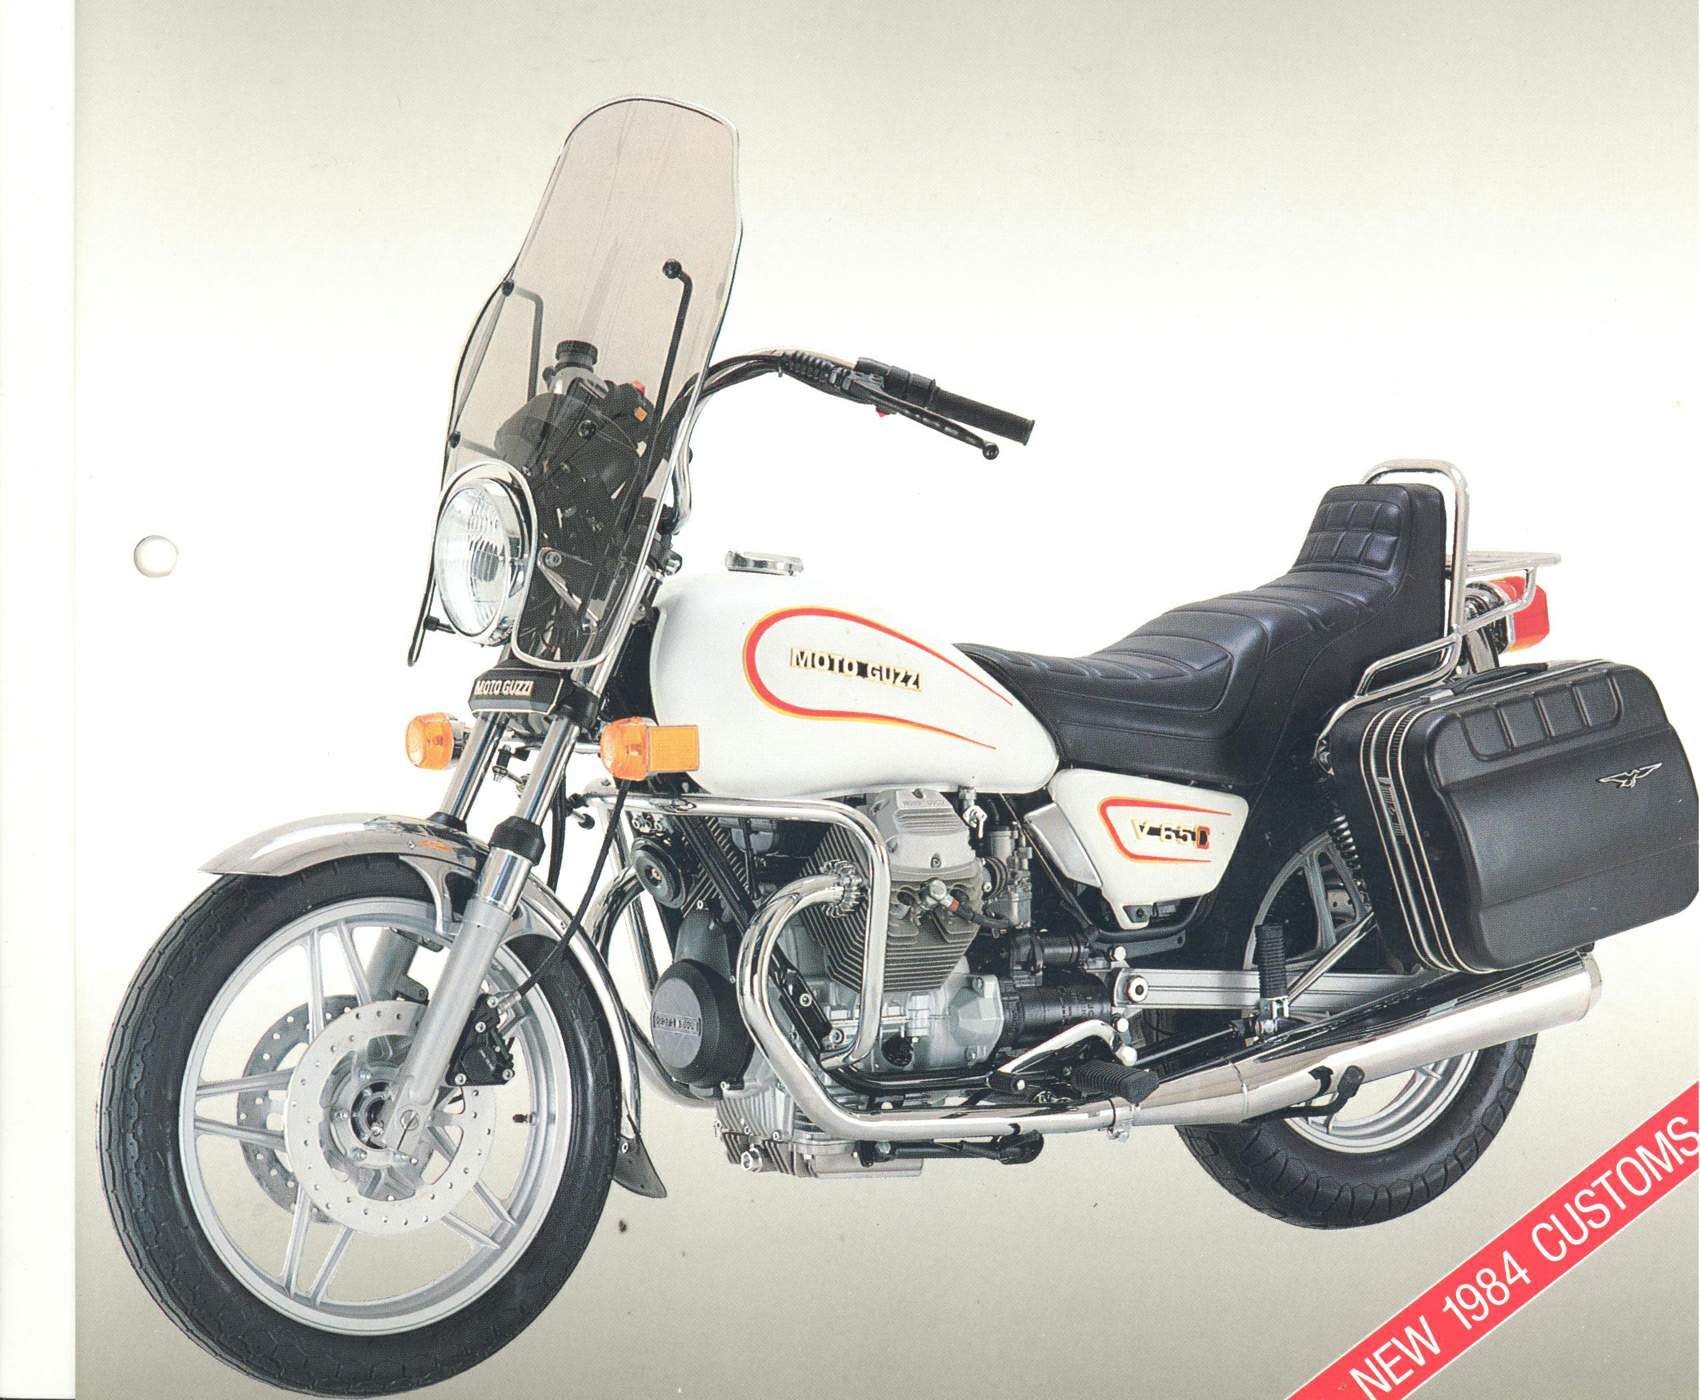 Moto Guzzi V 65C For Sale Specifications, Price and Images